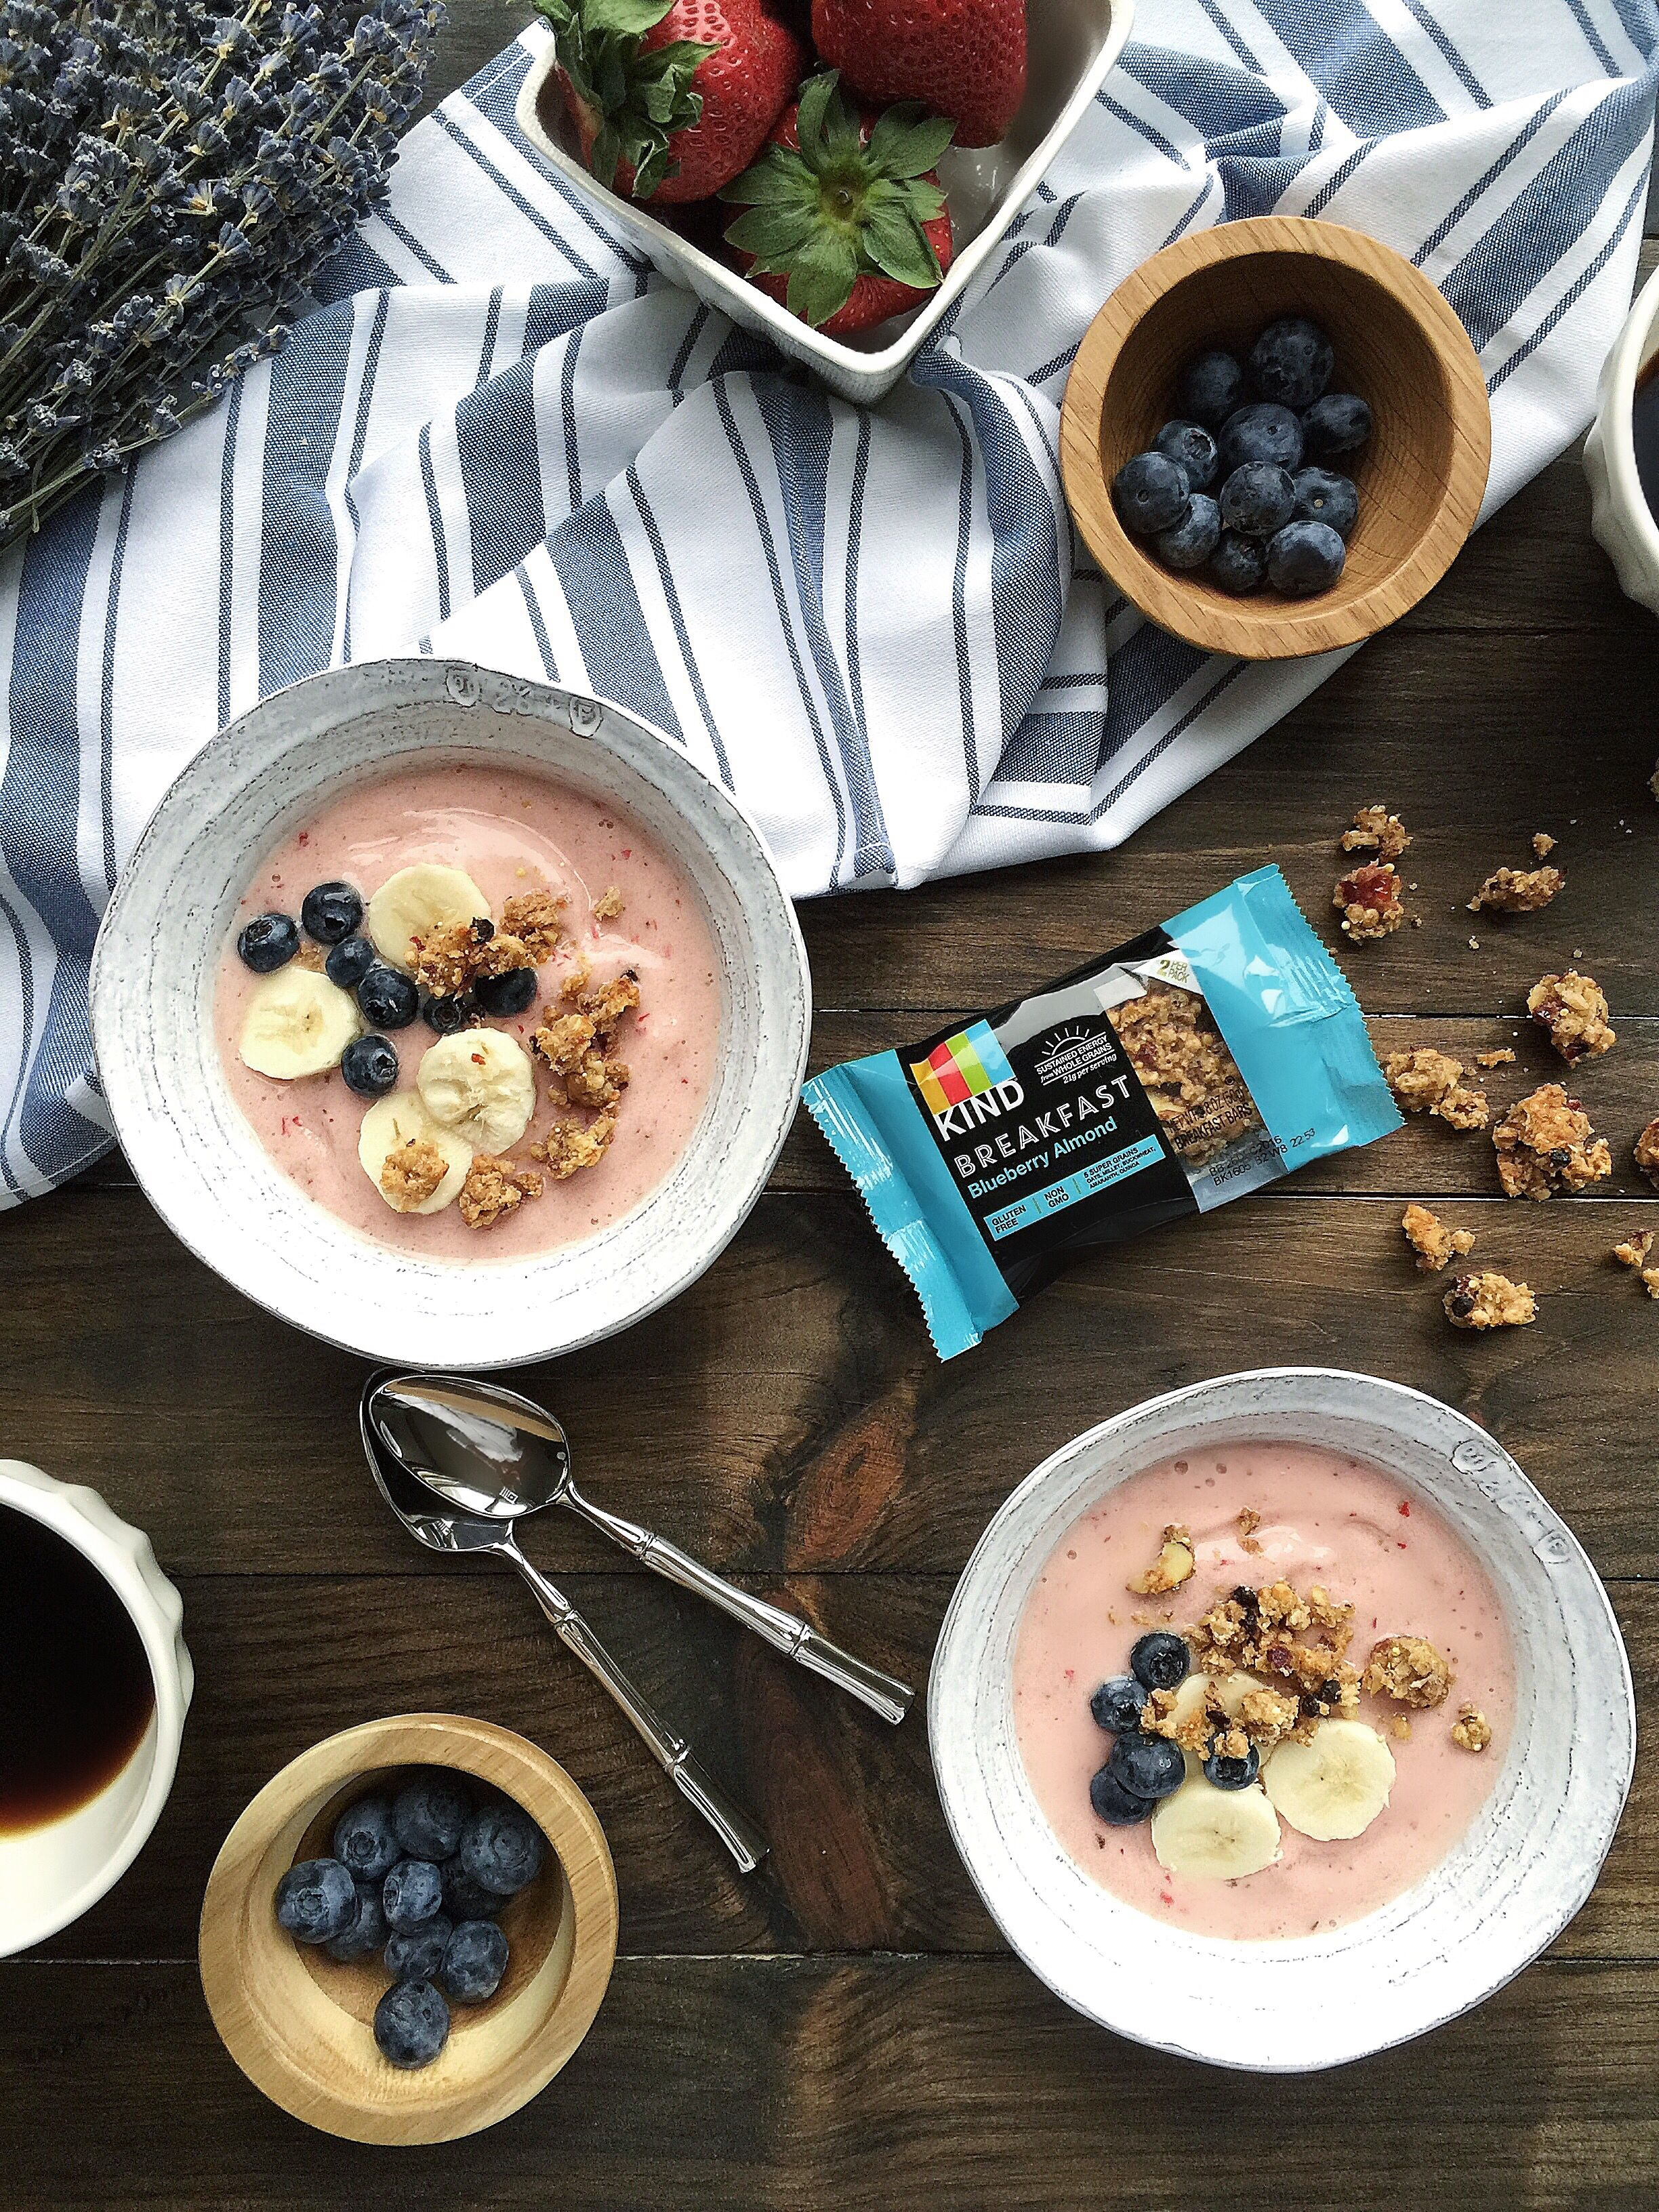 """""""Sharing one of my fave smoothie bowl breakfasts topped with crumbles from my KIND Blueberry Almond breakfast bar,.."""" @carissa_burton"""